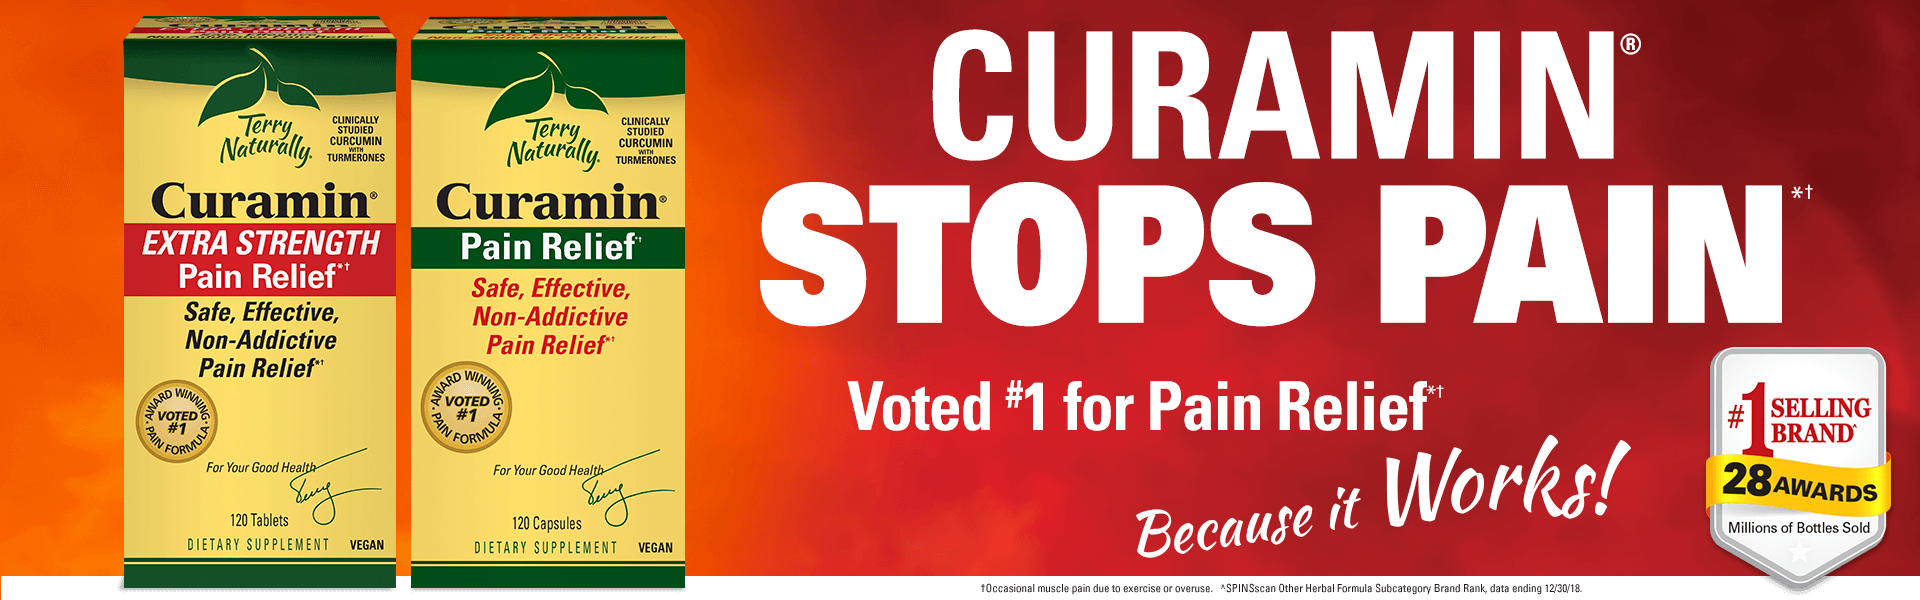 Curamin® STOPS PAIN*† • Voted #1 Pain Relief*†